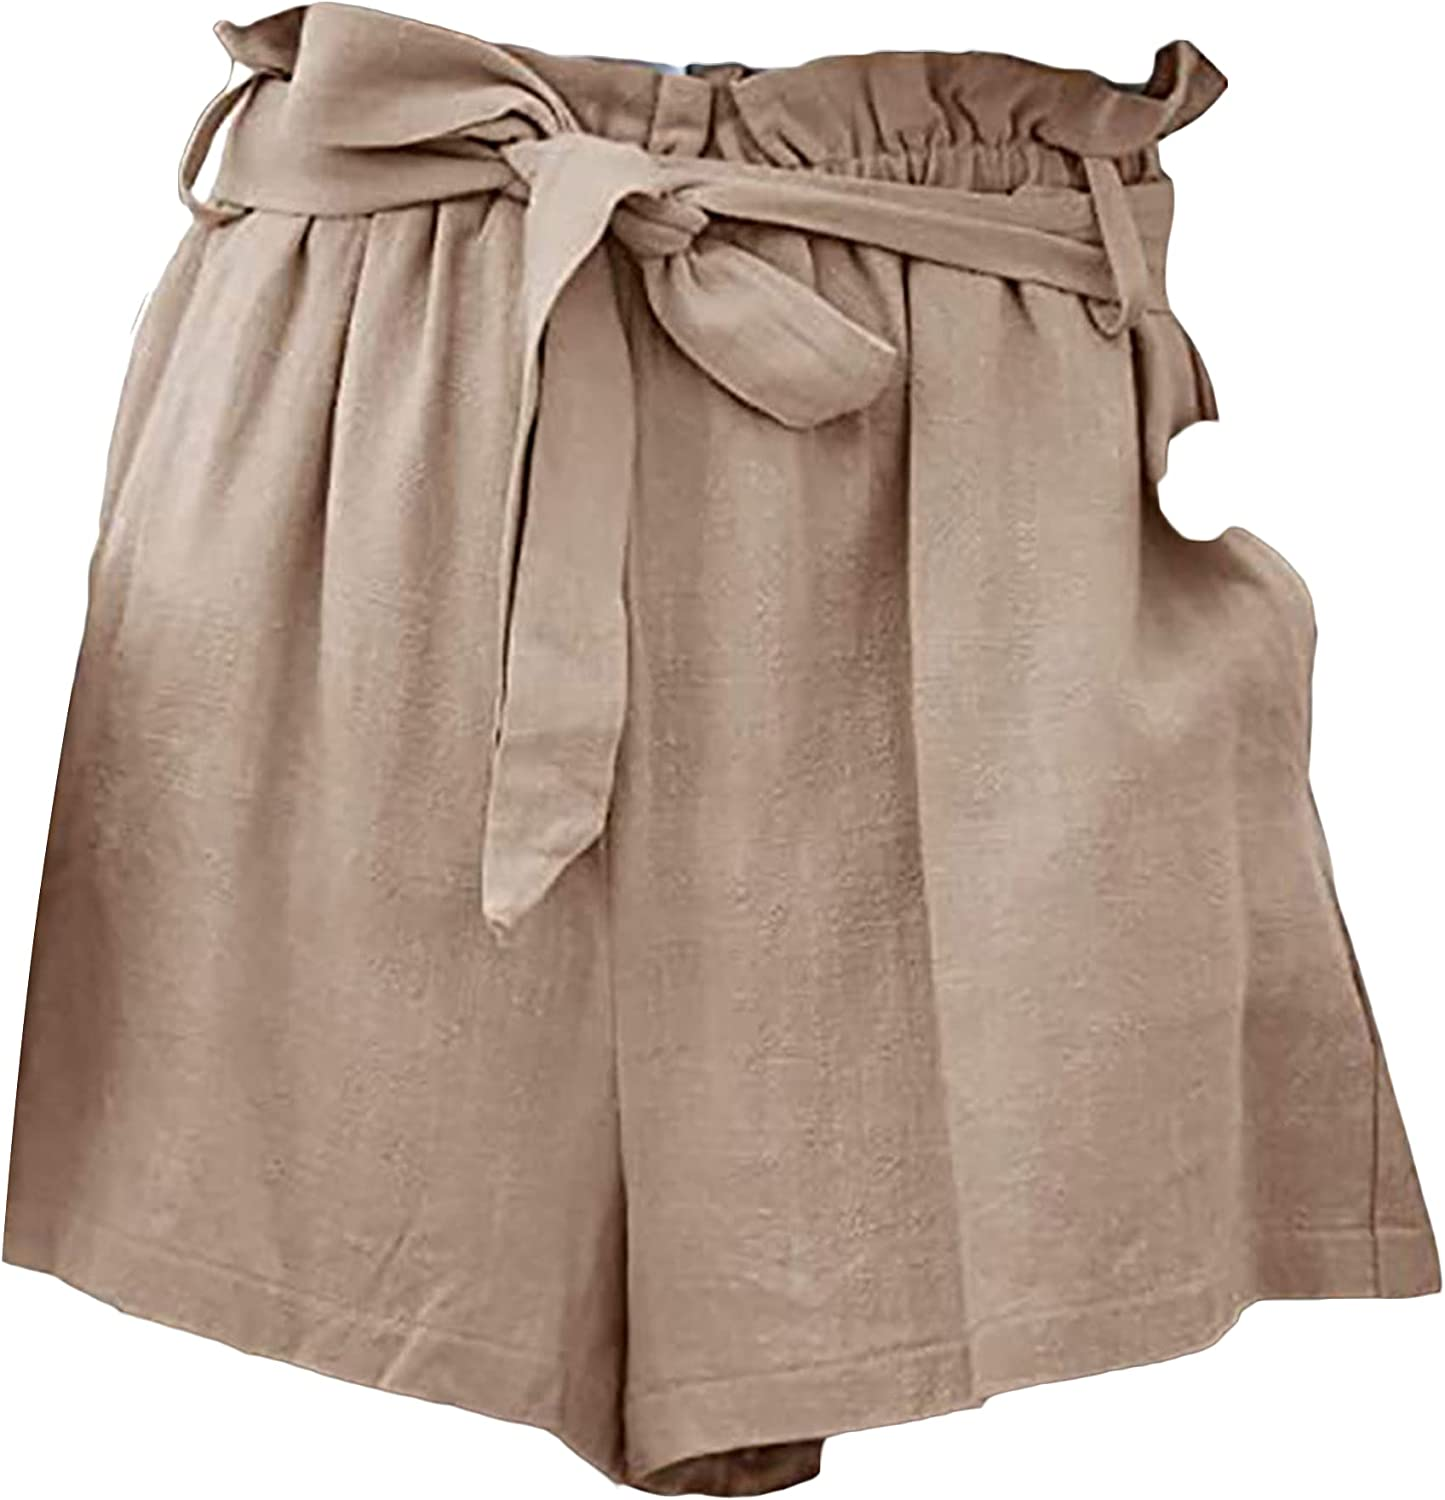 High Waist Super popular specialty store Bow Tie Shorts Denver Mall for S Paper Ruffle Women Bag